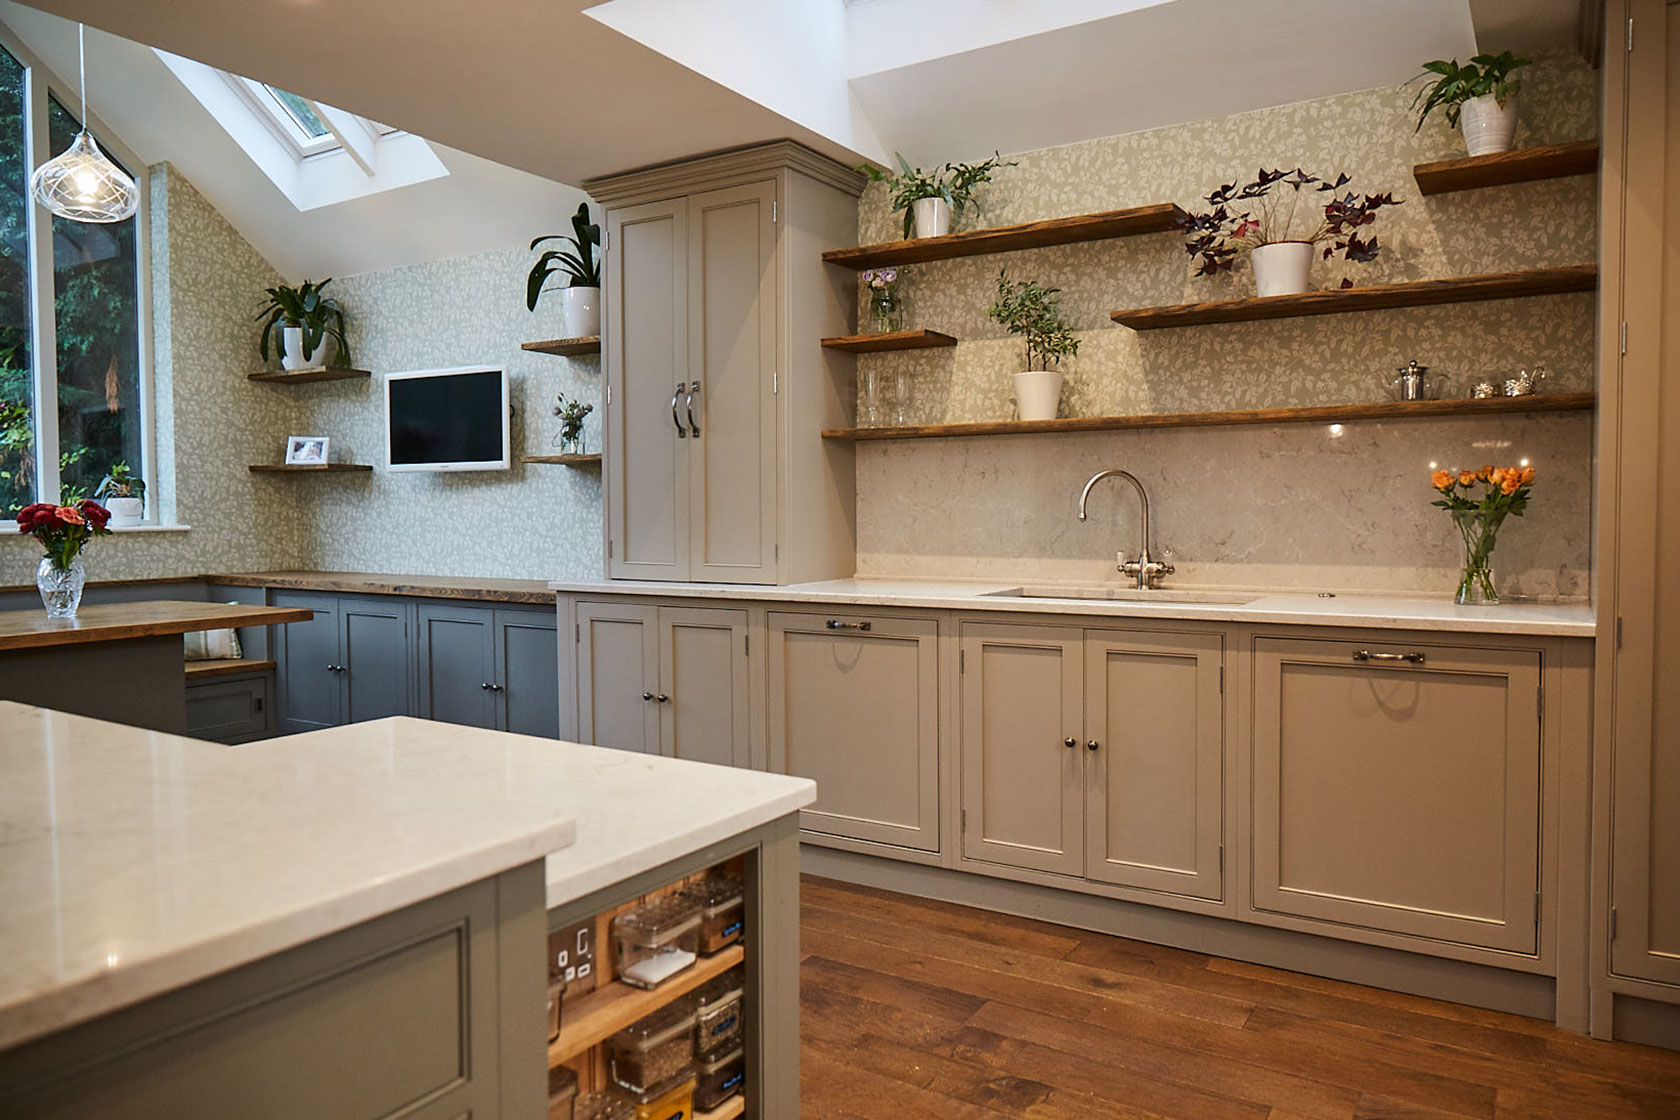 Traditional painted bespoke kitchen sink run with oak flooring